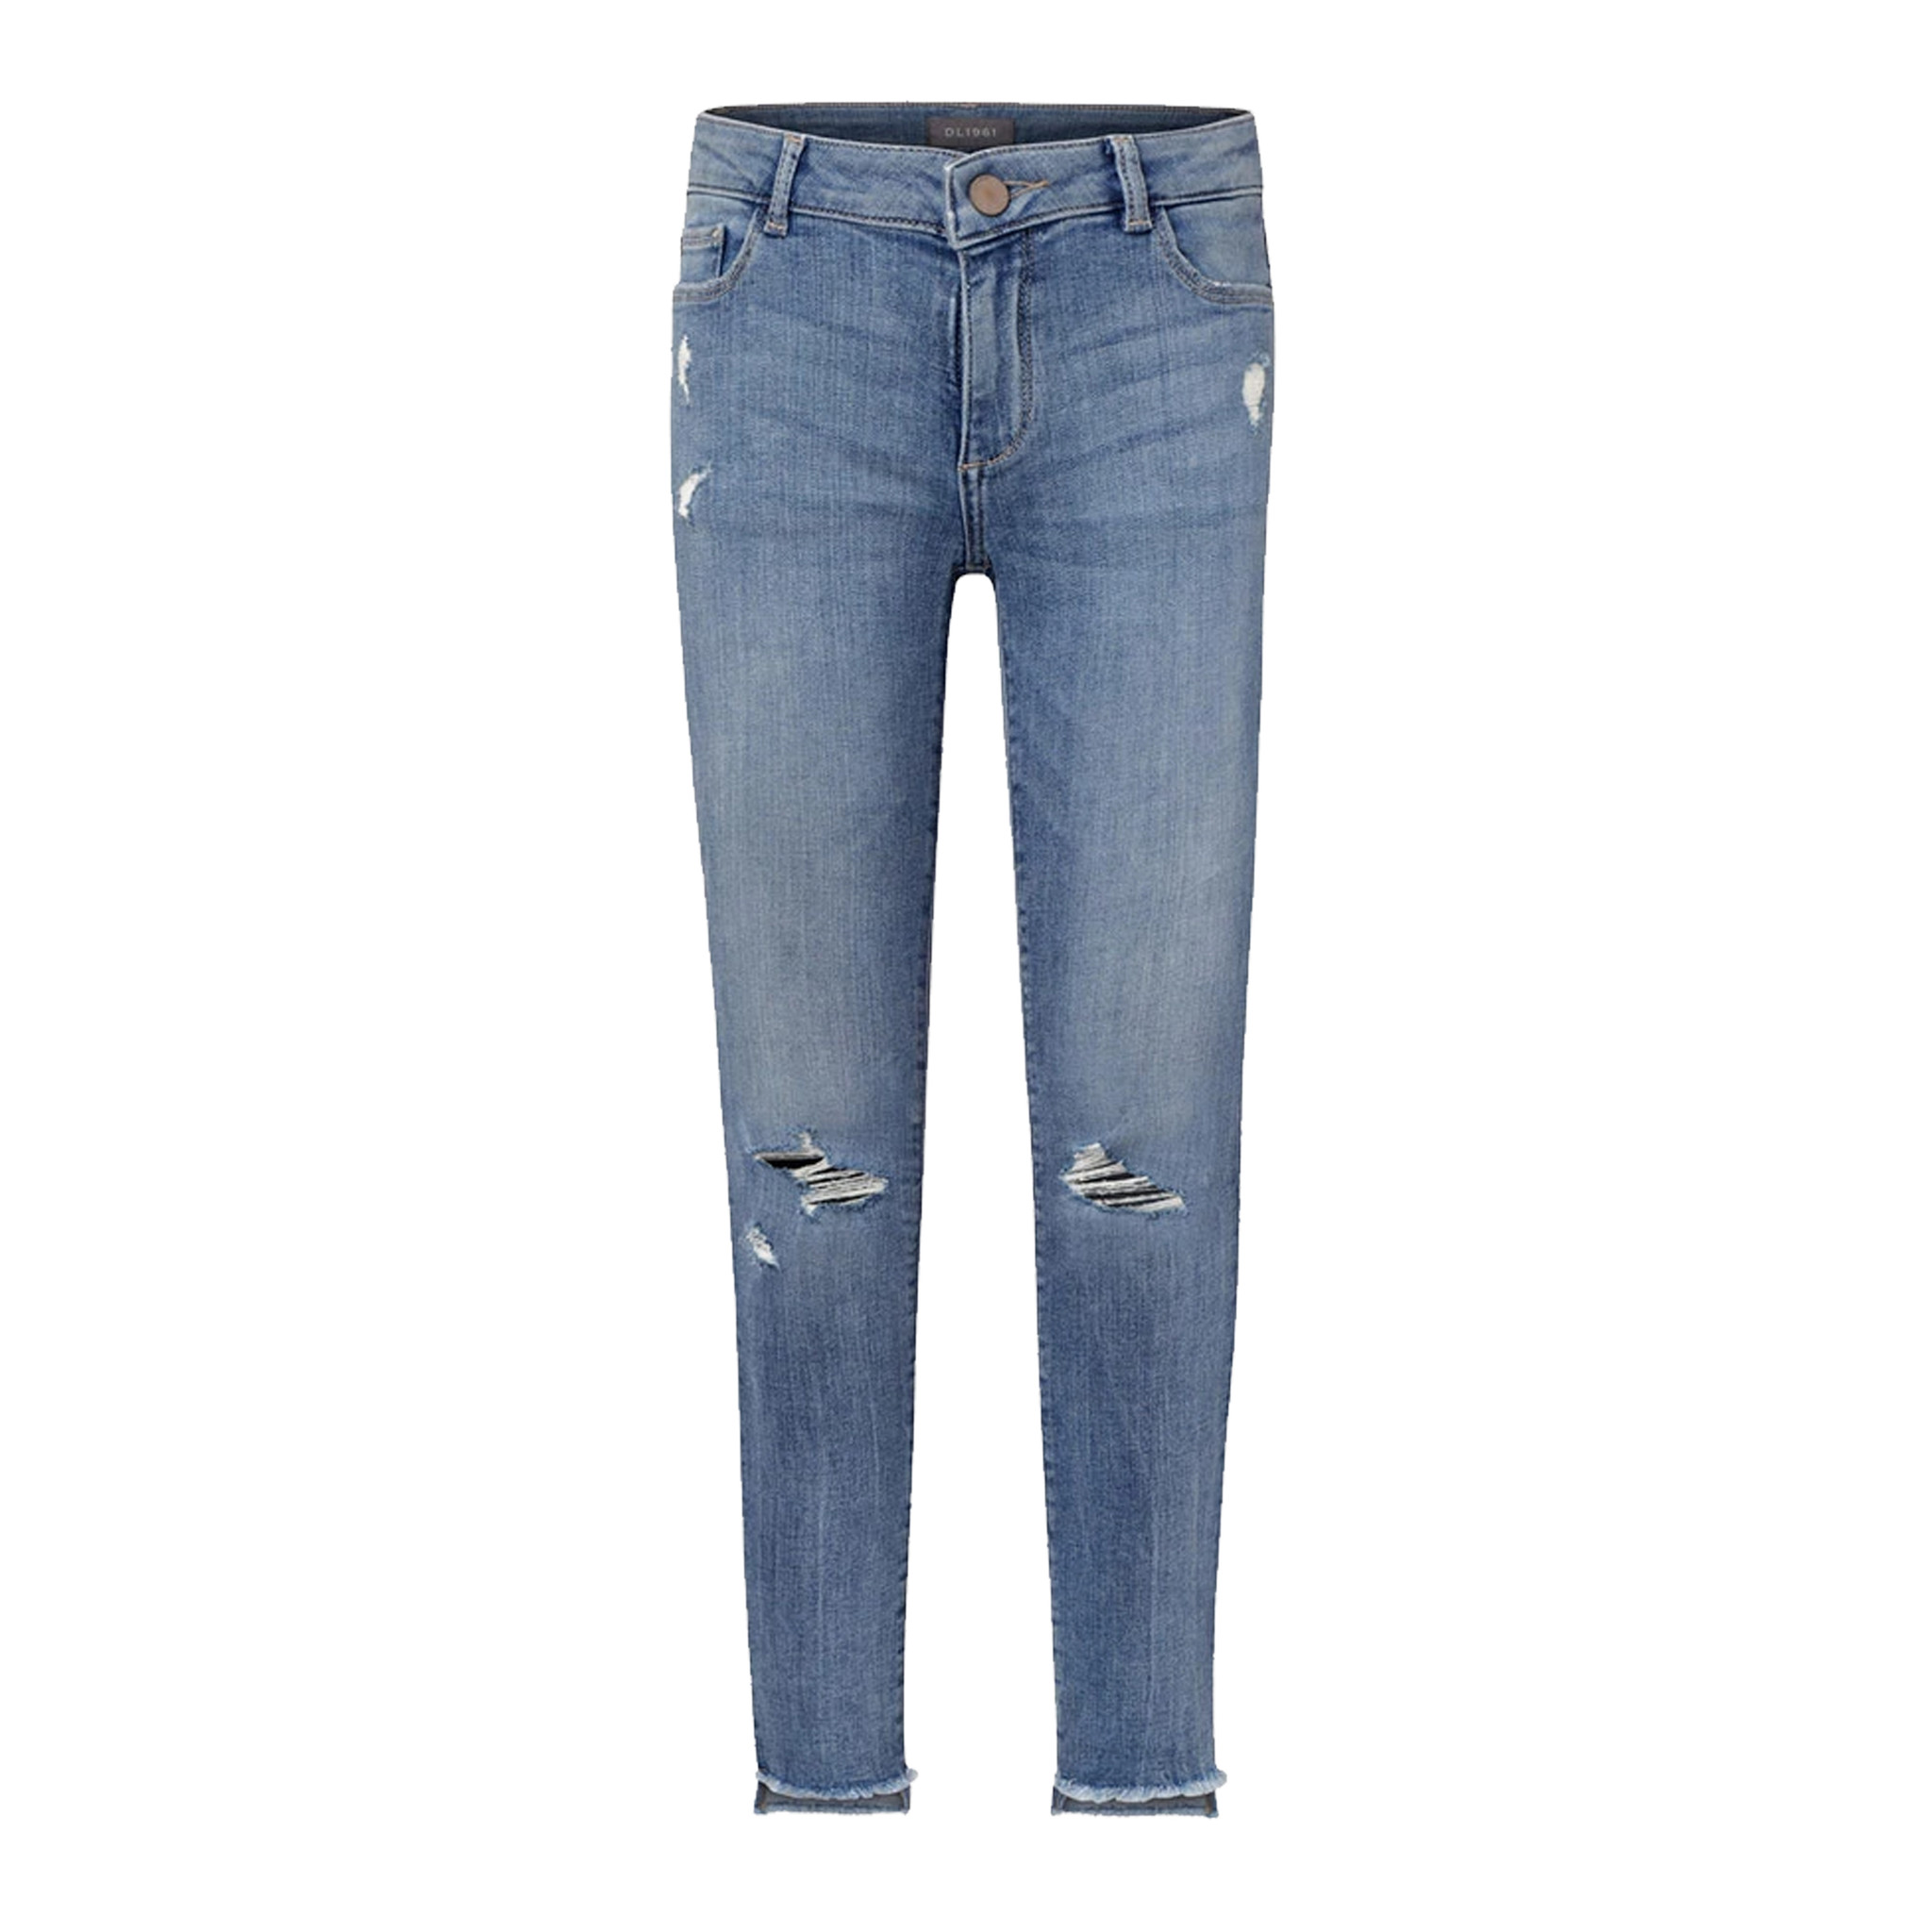 DL1961 Distressed Skinny Jeans